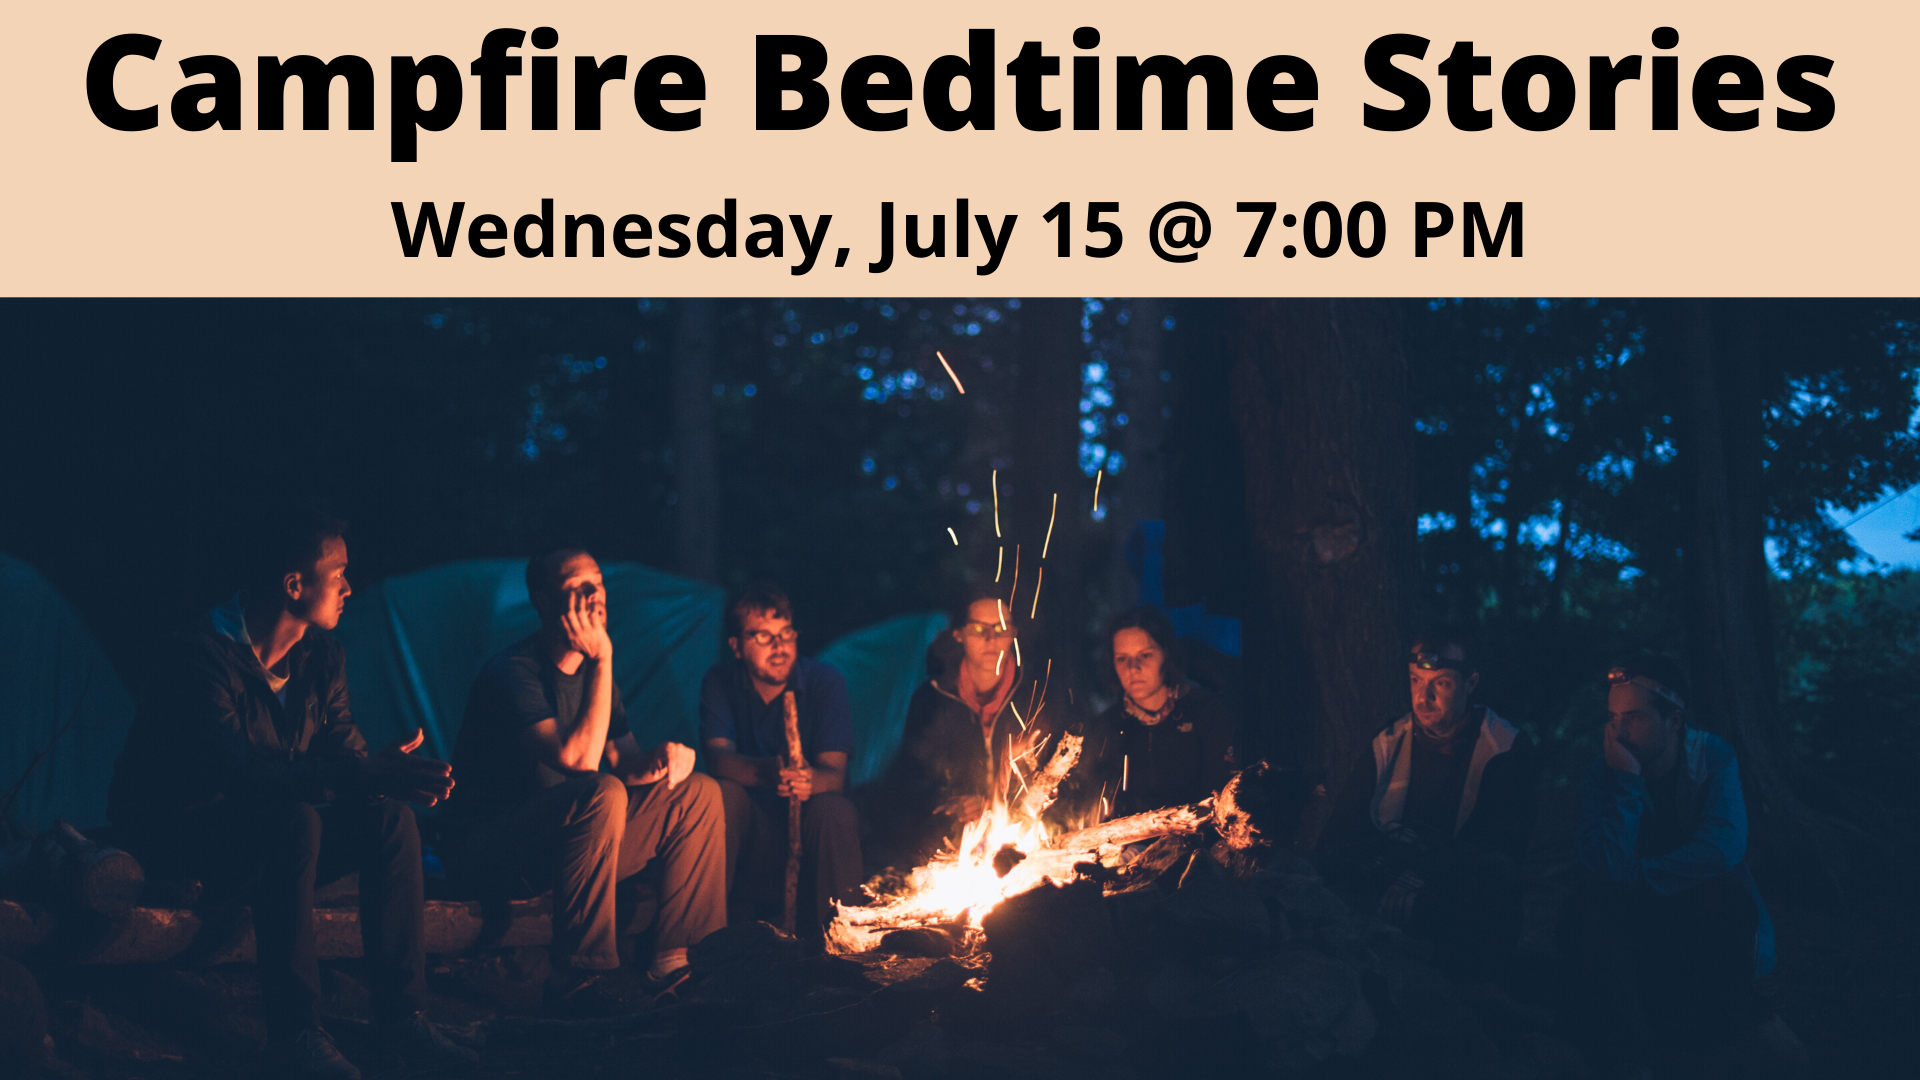 Campfire Bedtime Stories